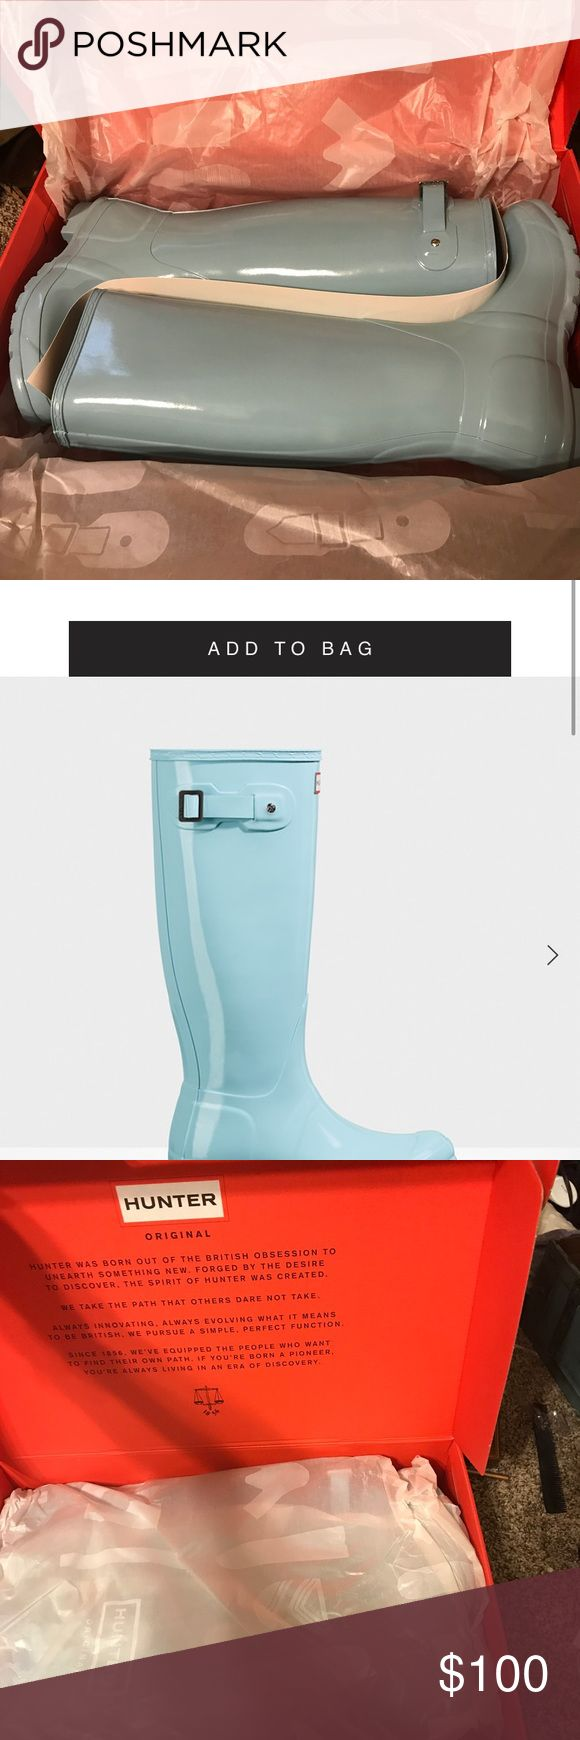 Green mint Hunter boots size 8 Brand new. Only tried on. Original packaging. Hunter does not return sale items, and these do not fit me. Selling for $100.00 size 8 ( I normally wear a 8 1/2 to a 9 ) I have a pair of Hunters already that do fit and they are so worth it. Hunter Boots Shoes Winter & Rain Boots